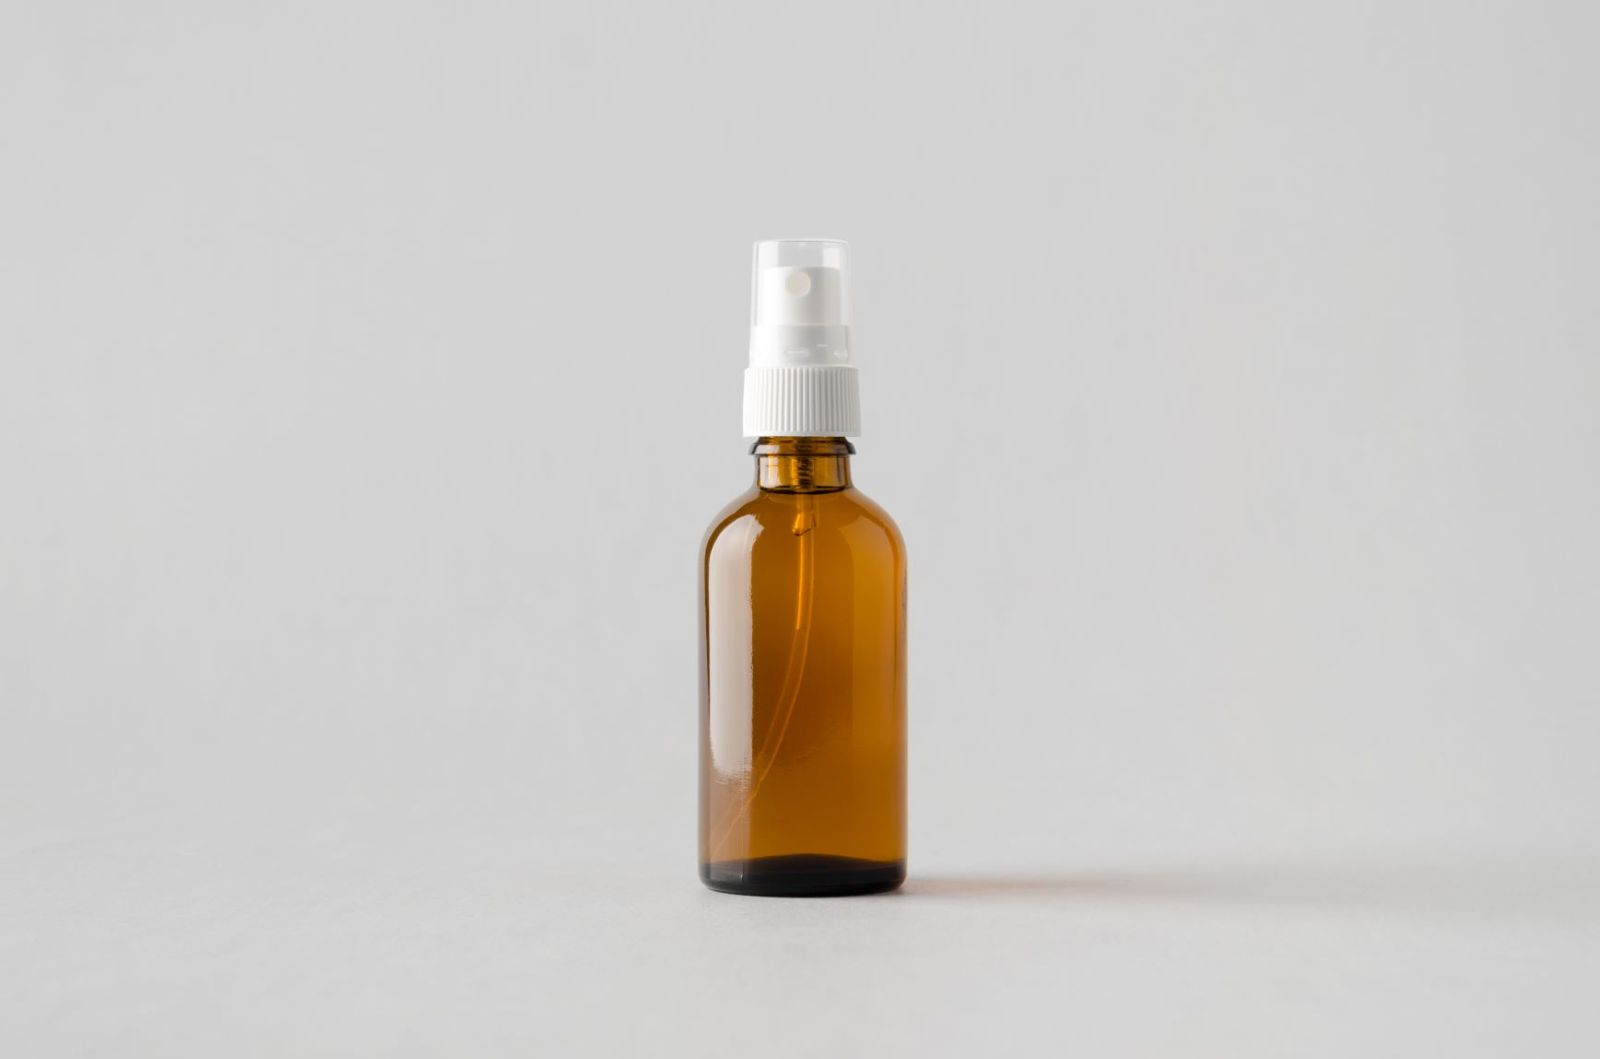 A new diabetic ulcer treatment, delivered in a convenient spray bottle, could make a major difference in the battle to prevent diabetic foot amputations